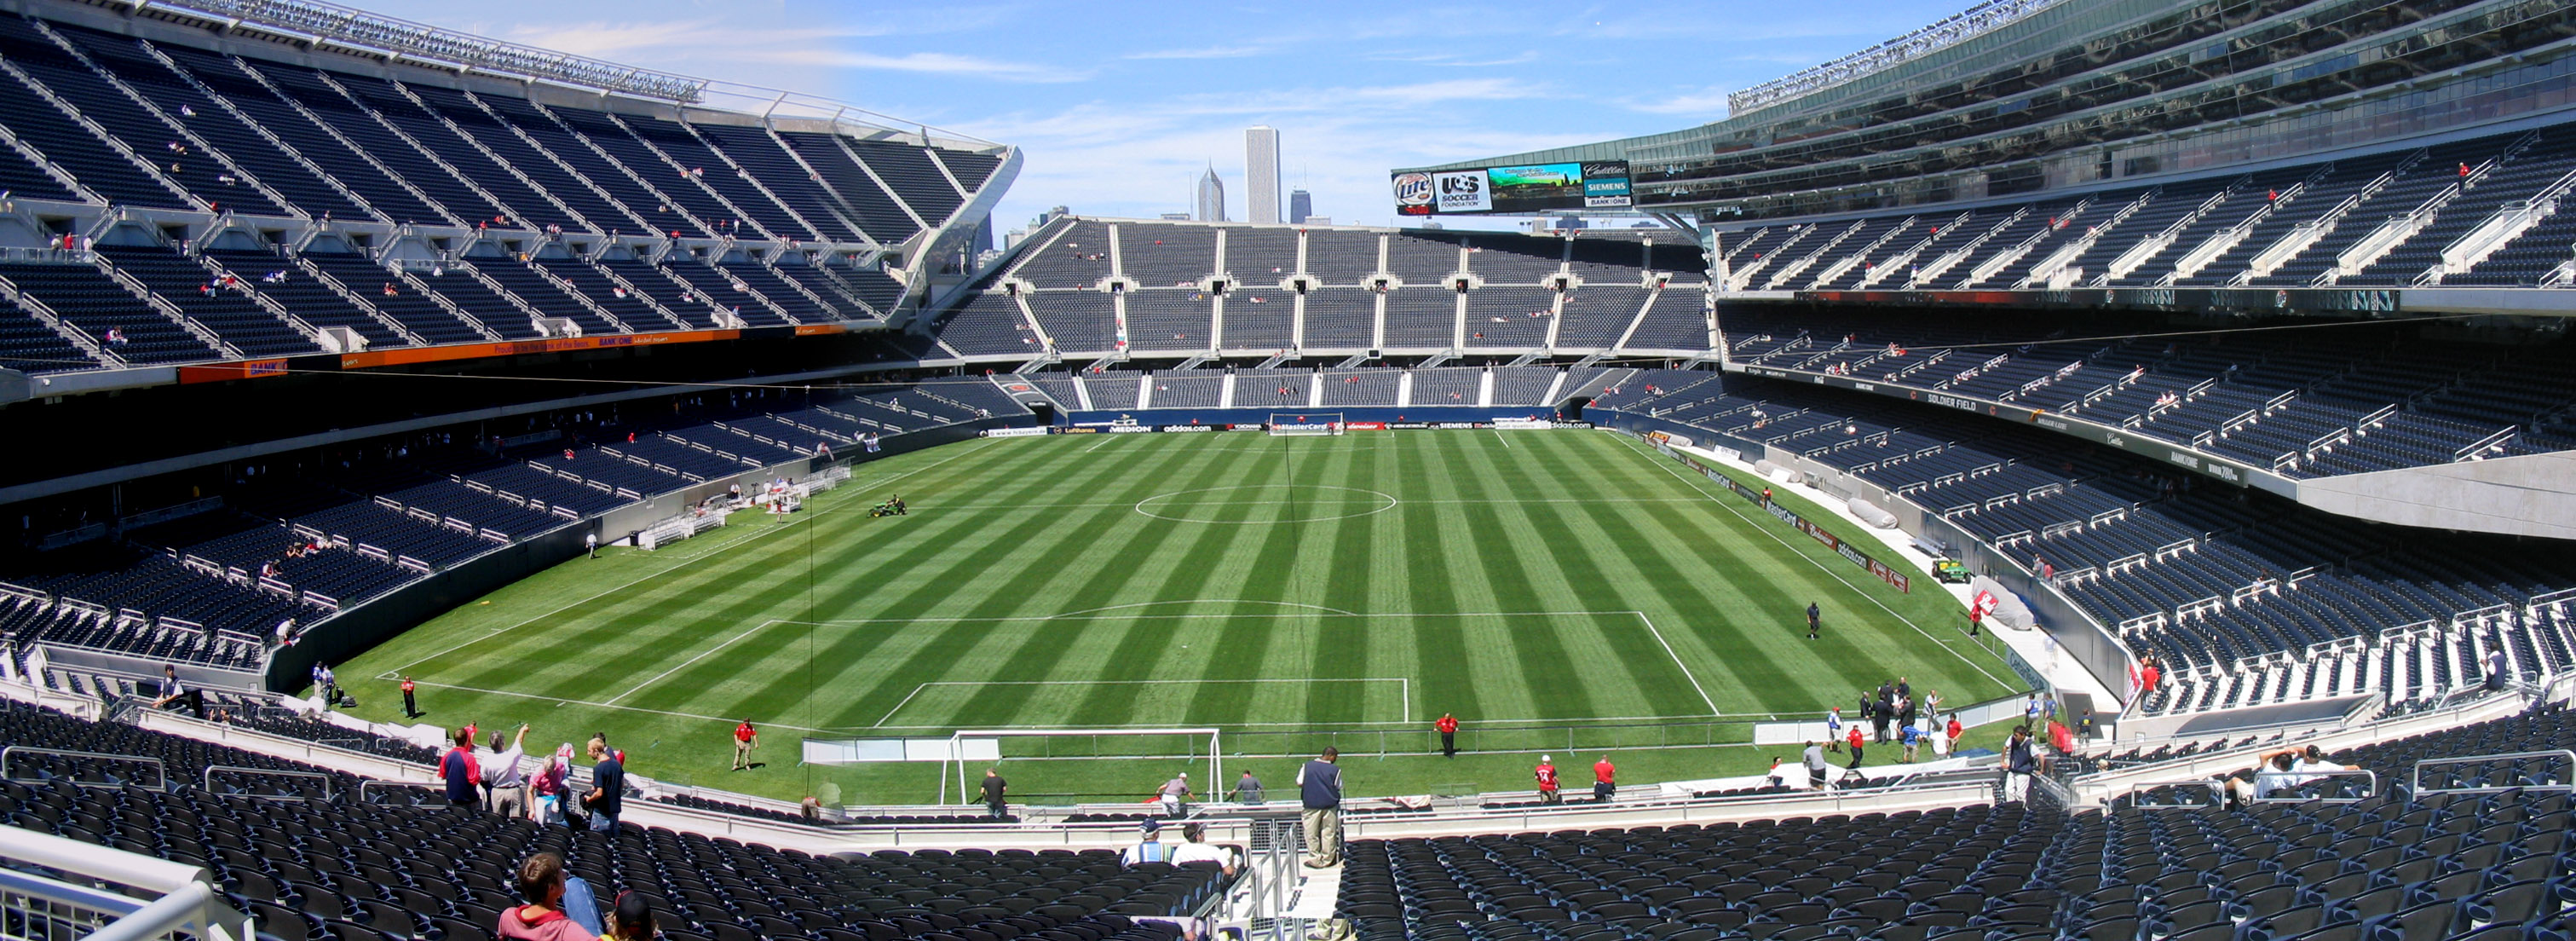 File The Refurbished Soldier Field Jpg Wikimedia Commons